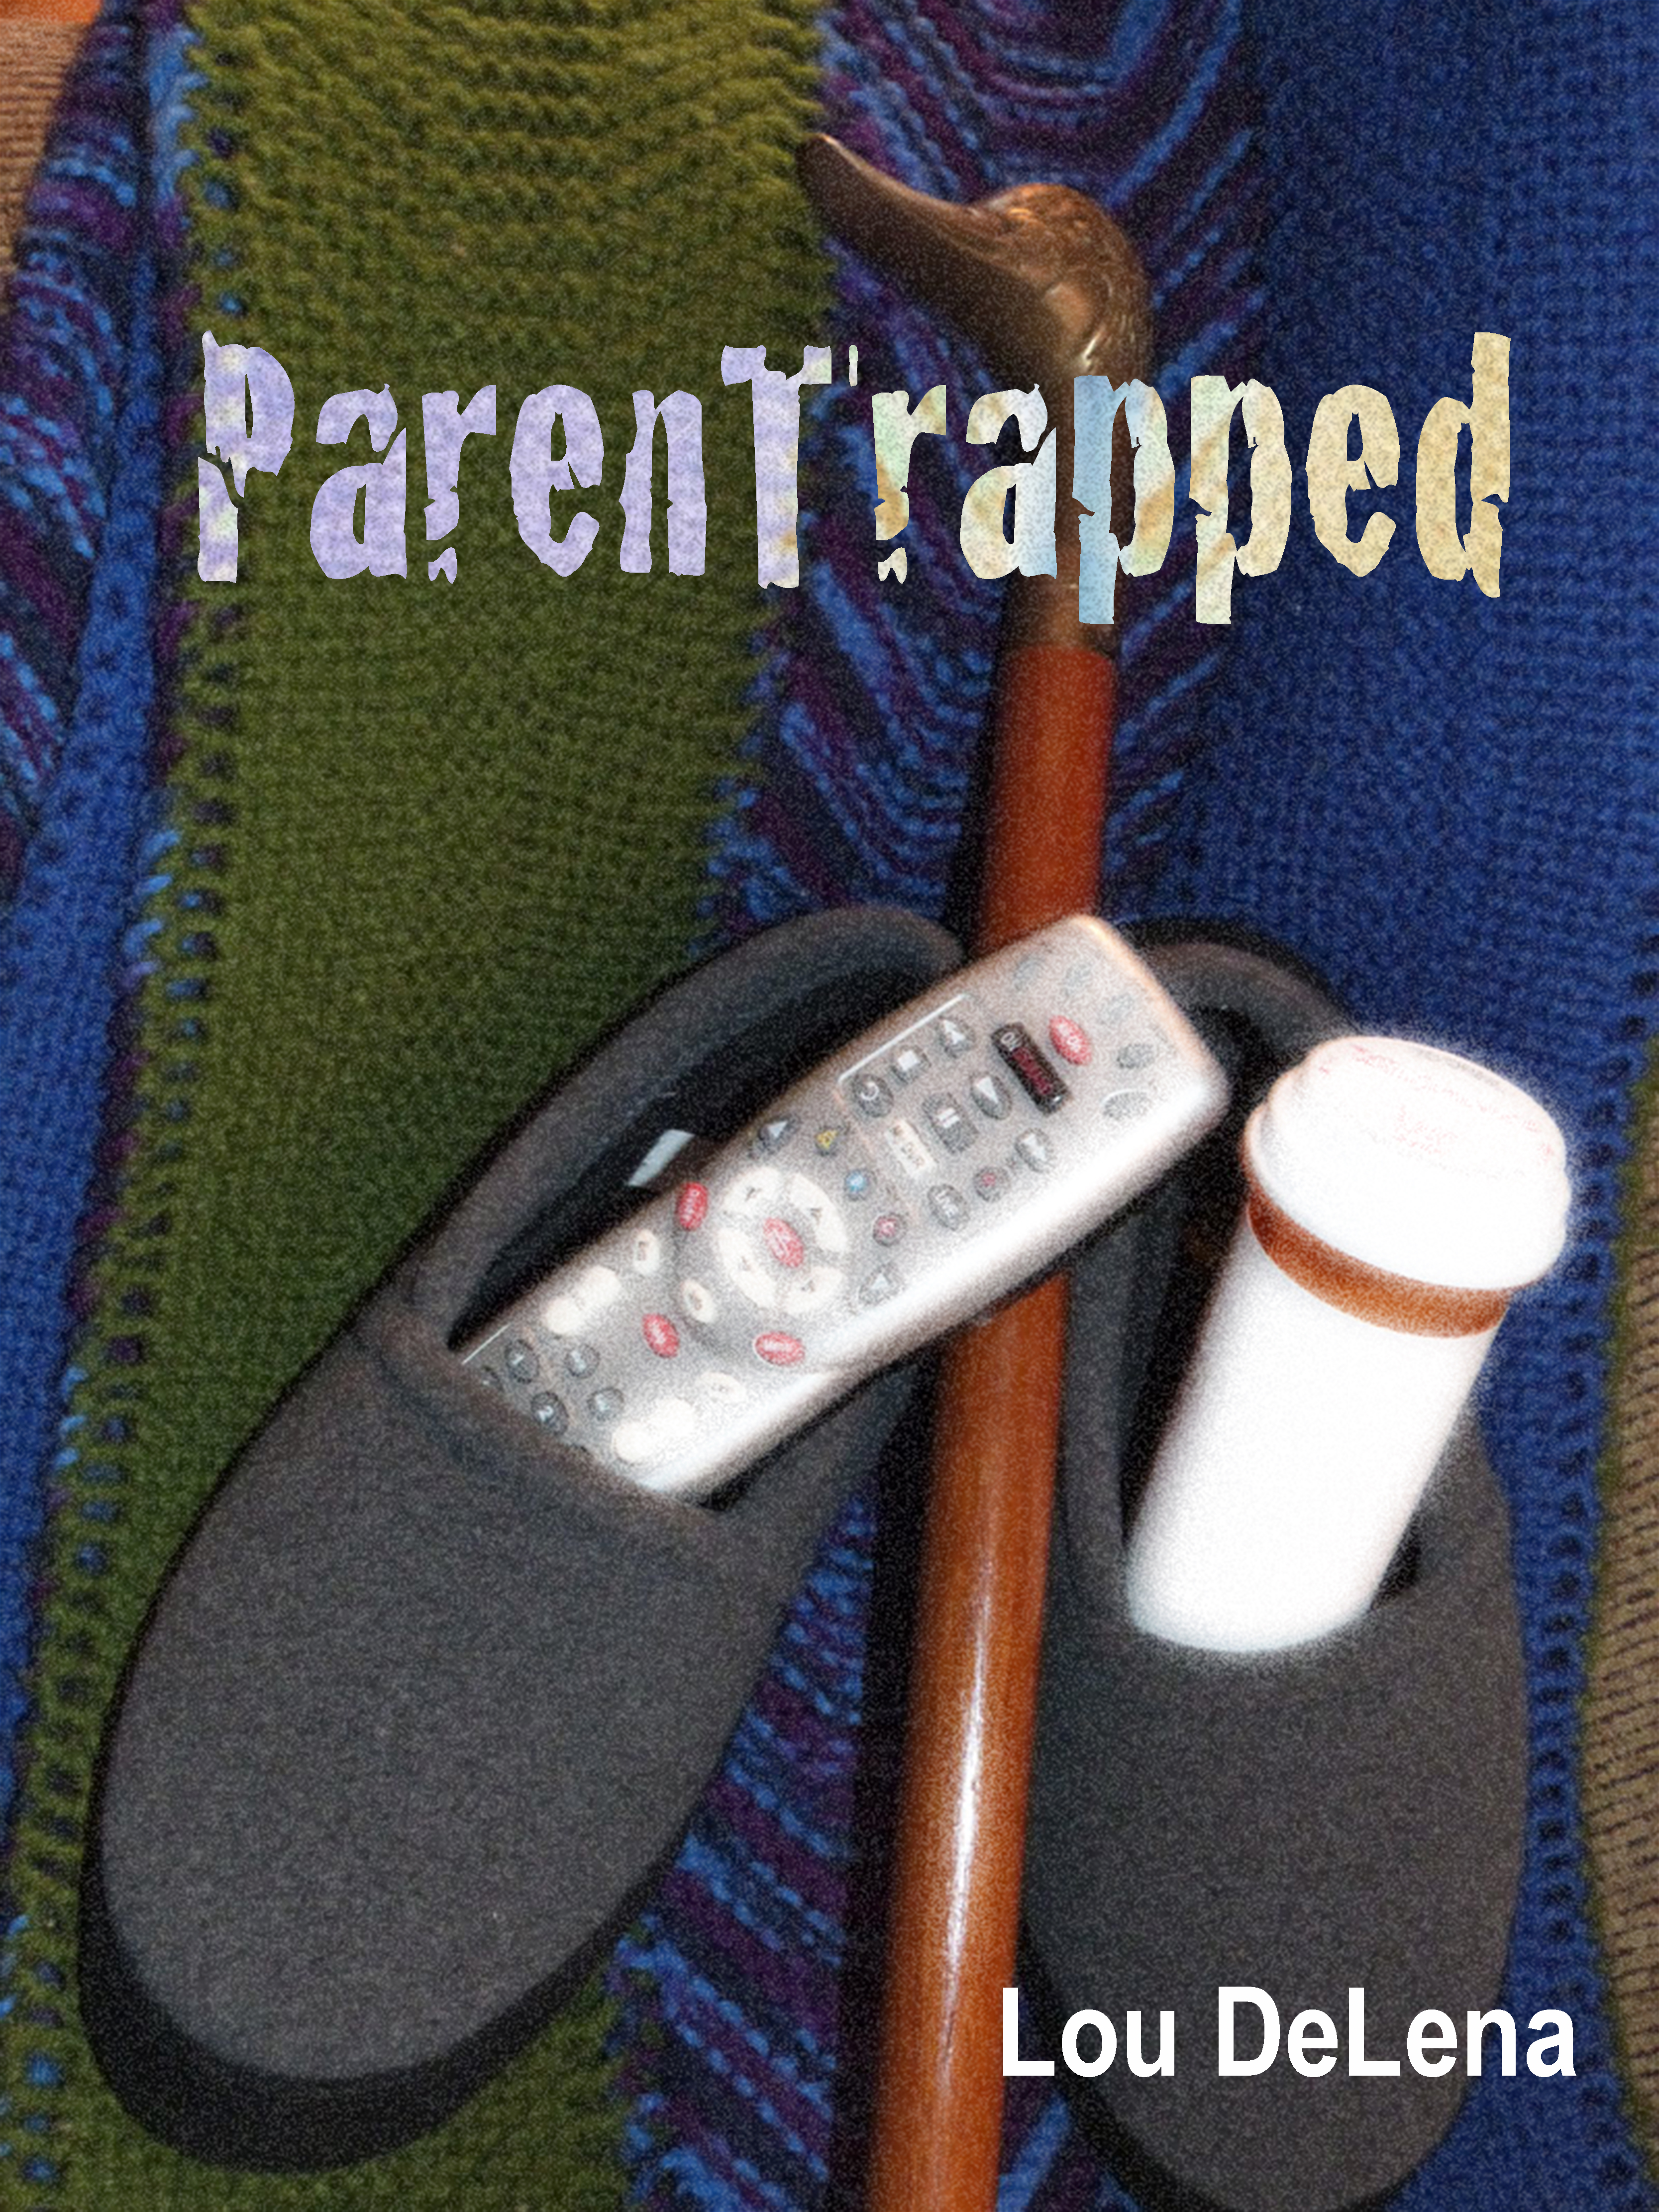 Parentrapped